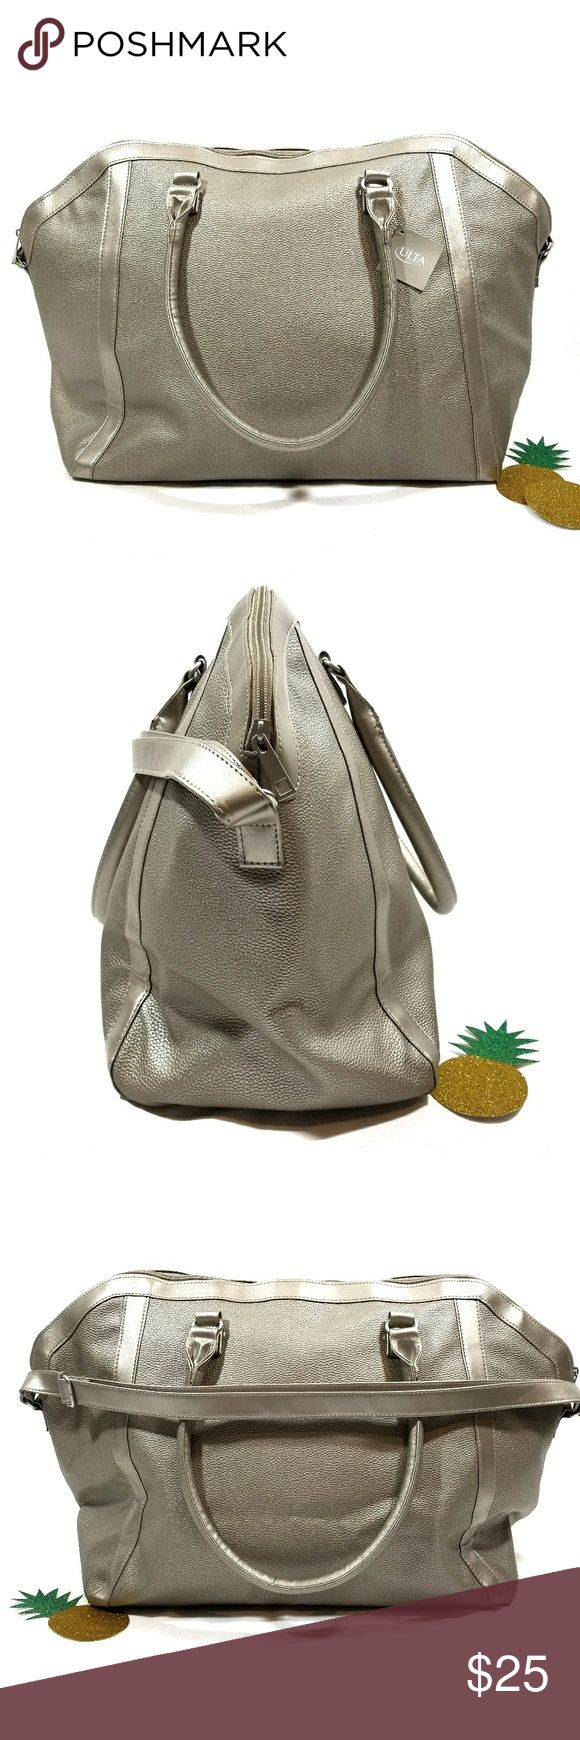 """Large ULTA tote This tote is a champagne/gold color. Length is approx 15"""", width is approx 24"""". Adjustable strap is approx 27"""" and can be extended to approx 48"""". Please note: there is a very small flaw on the side of the bag (see last pic) Ulta Bags Totes"""